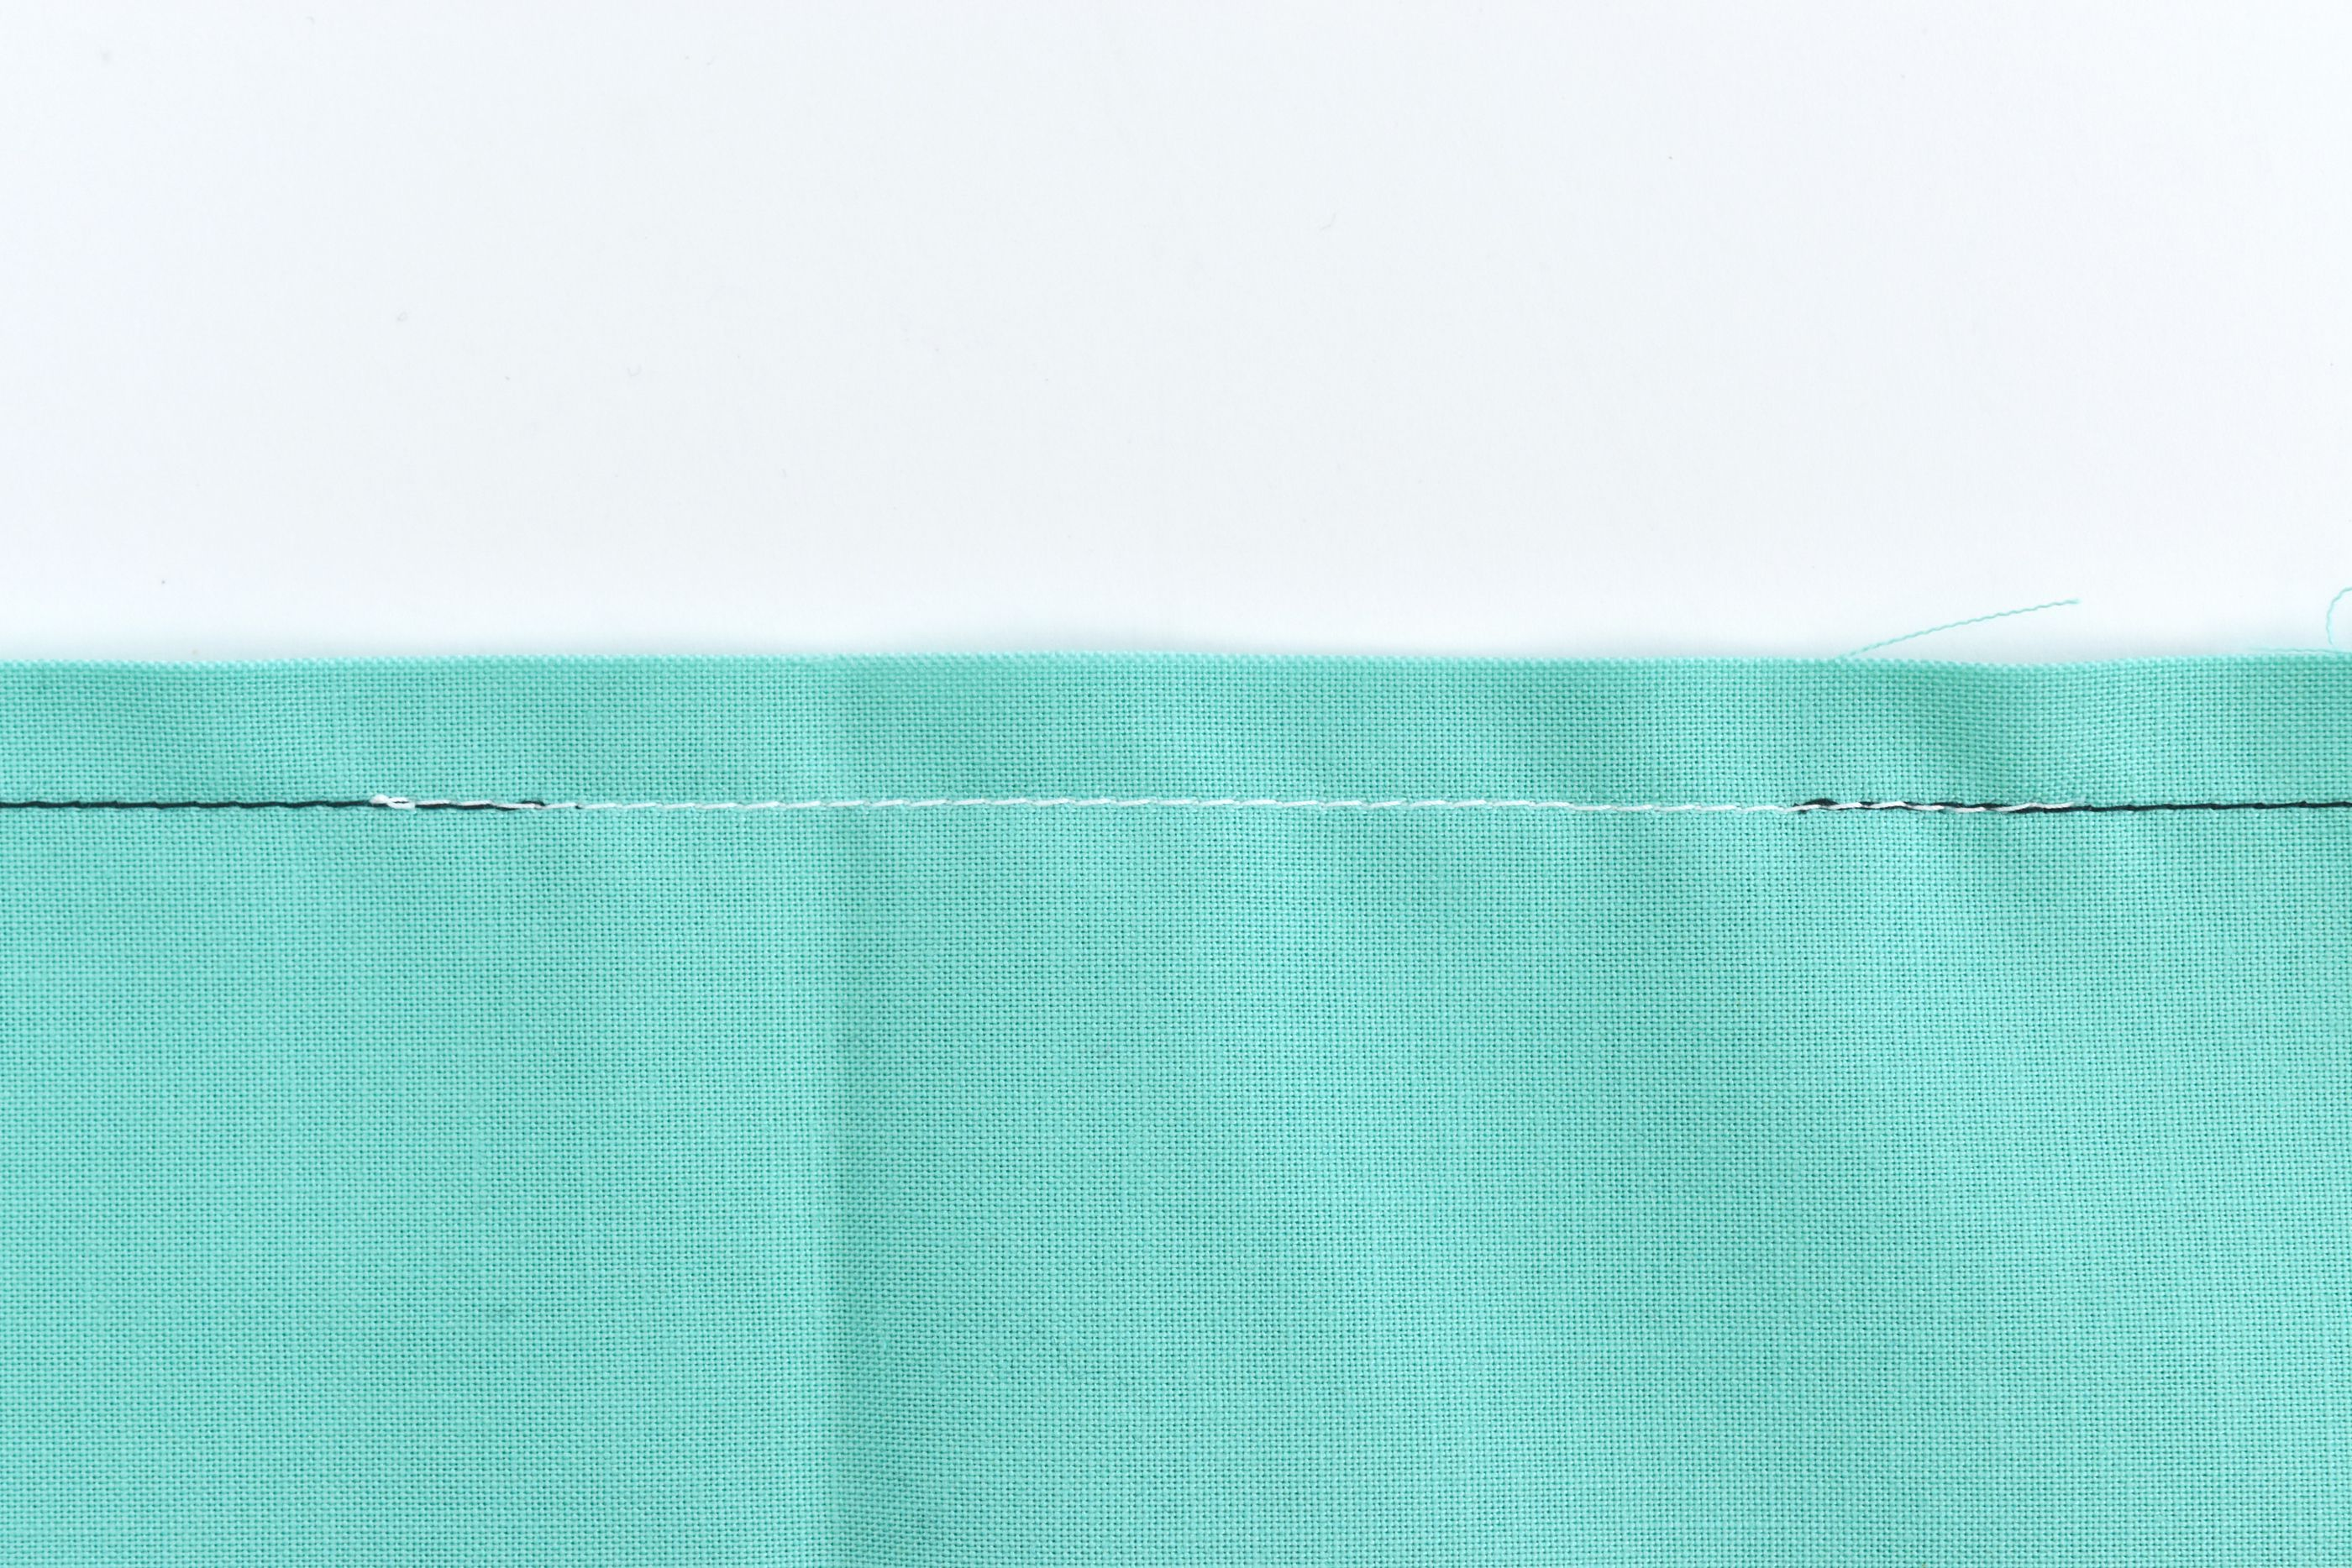 Sew the New Seam, Overlapping the Old